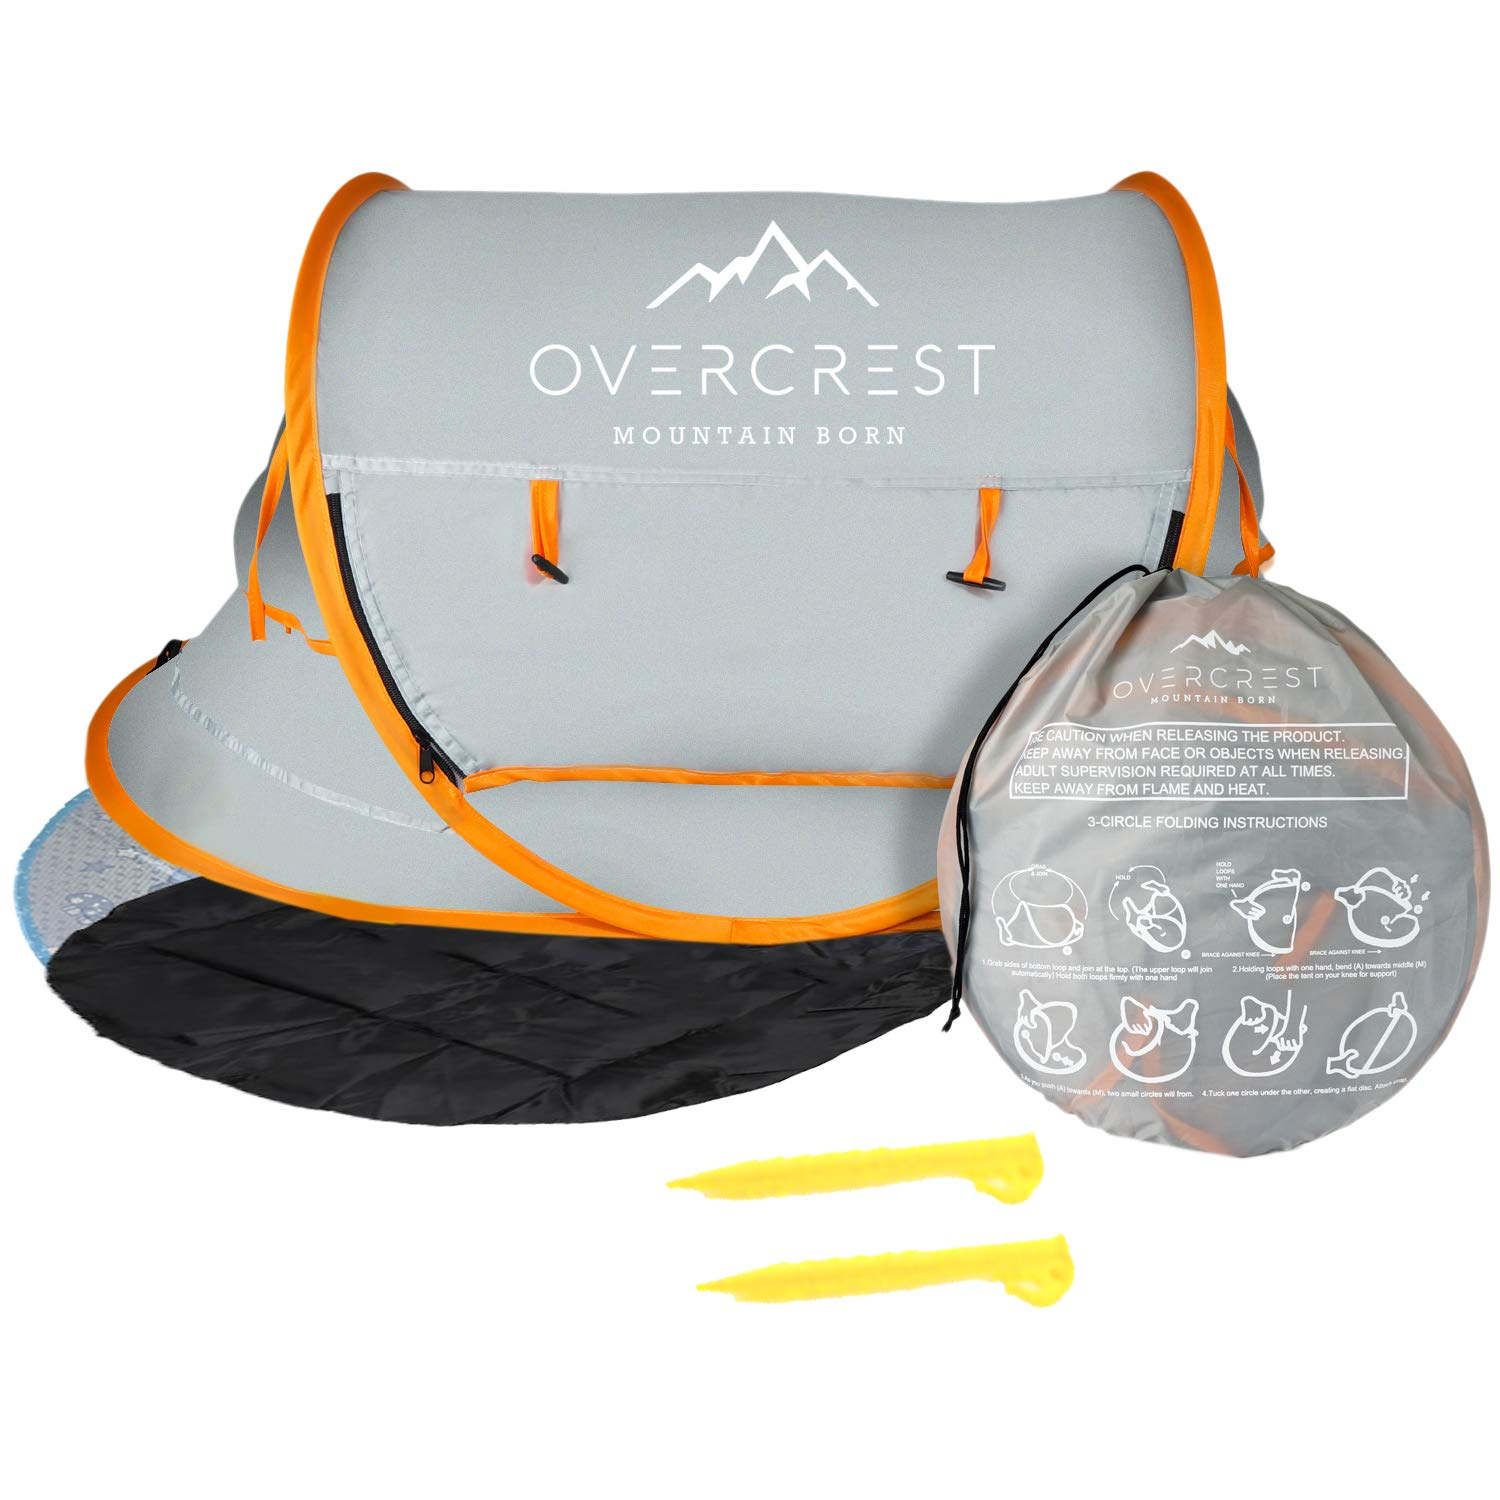 Overcrest Portable Beach Pop up Tent Babies, UPF 50+, Large Sun Shelter Infant Babies, Mosquito Net Sunshade, Lightweight Outdoor Travel Baby Crib Bed (Orange w/Pad & Mat) by Overcrest